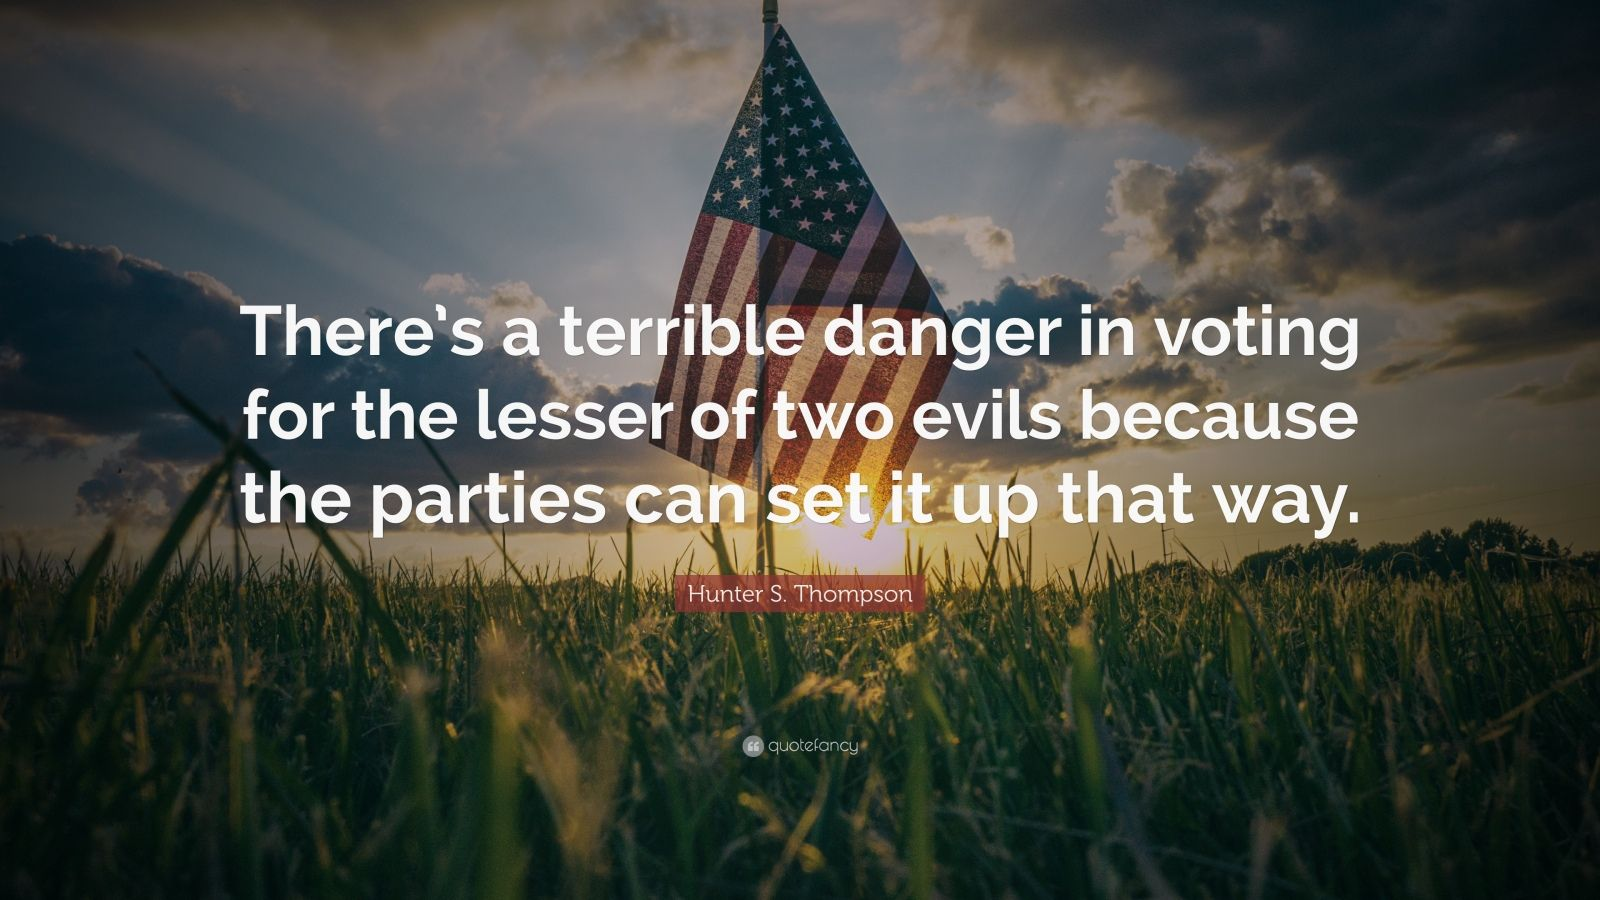 """Hunter S. Thompson Quote: """"There's a terrible danger in voting for the lesser of two evils because the parties can set it up that way."""""""